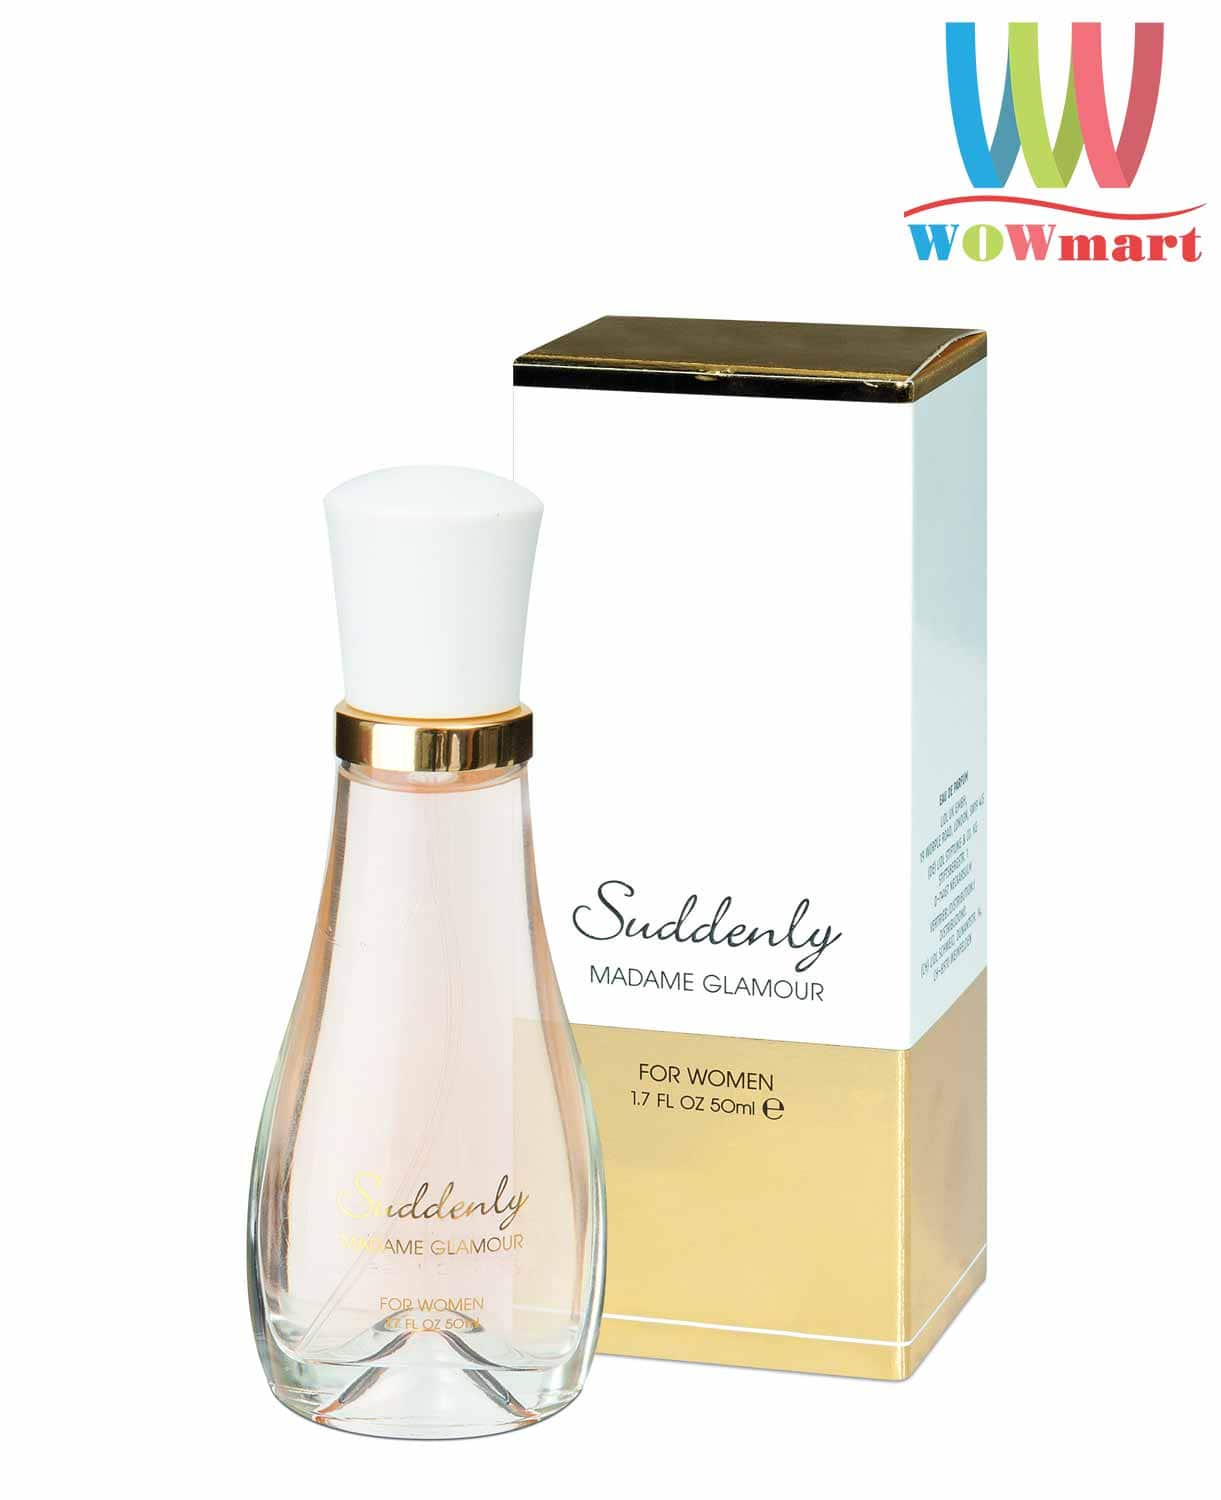 nuoc-hoa-nu-suddenly-madame-glamour-50ml